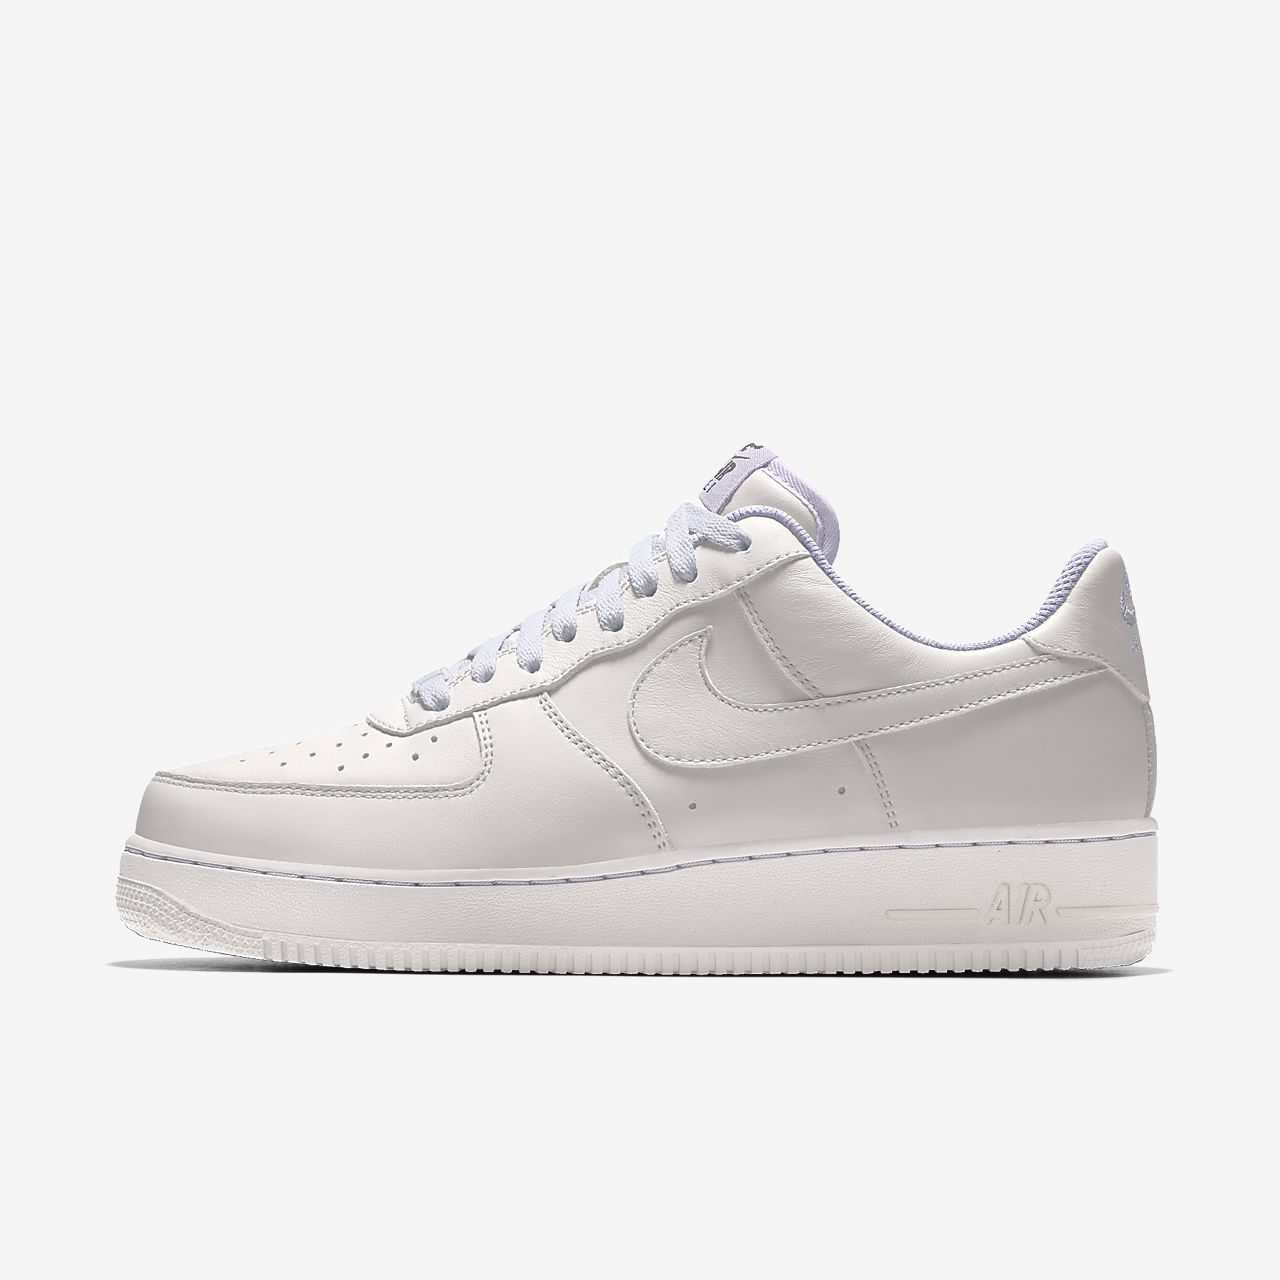 Femme Air You Chaussure 1 By Low pour Nike personnalisable